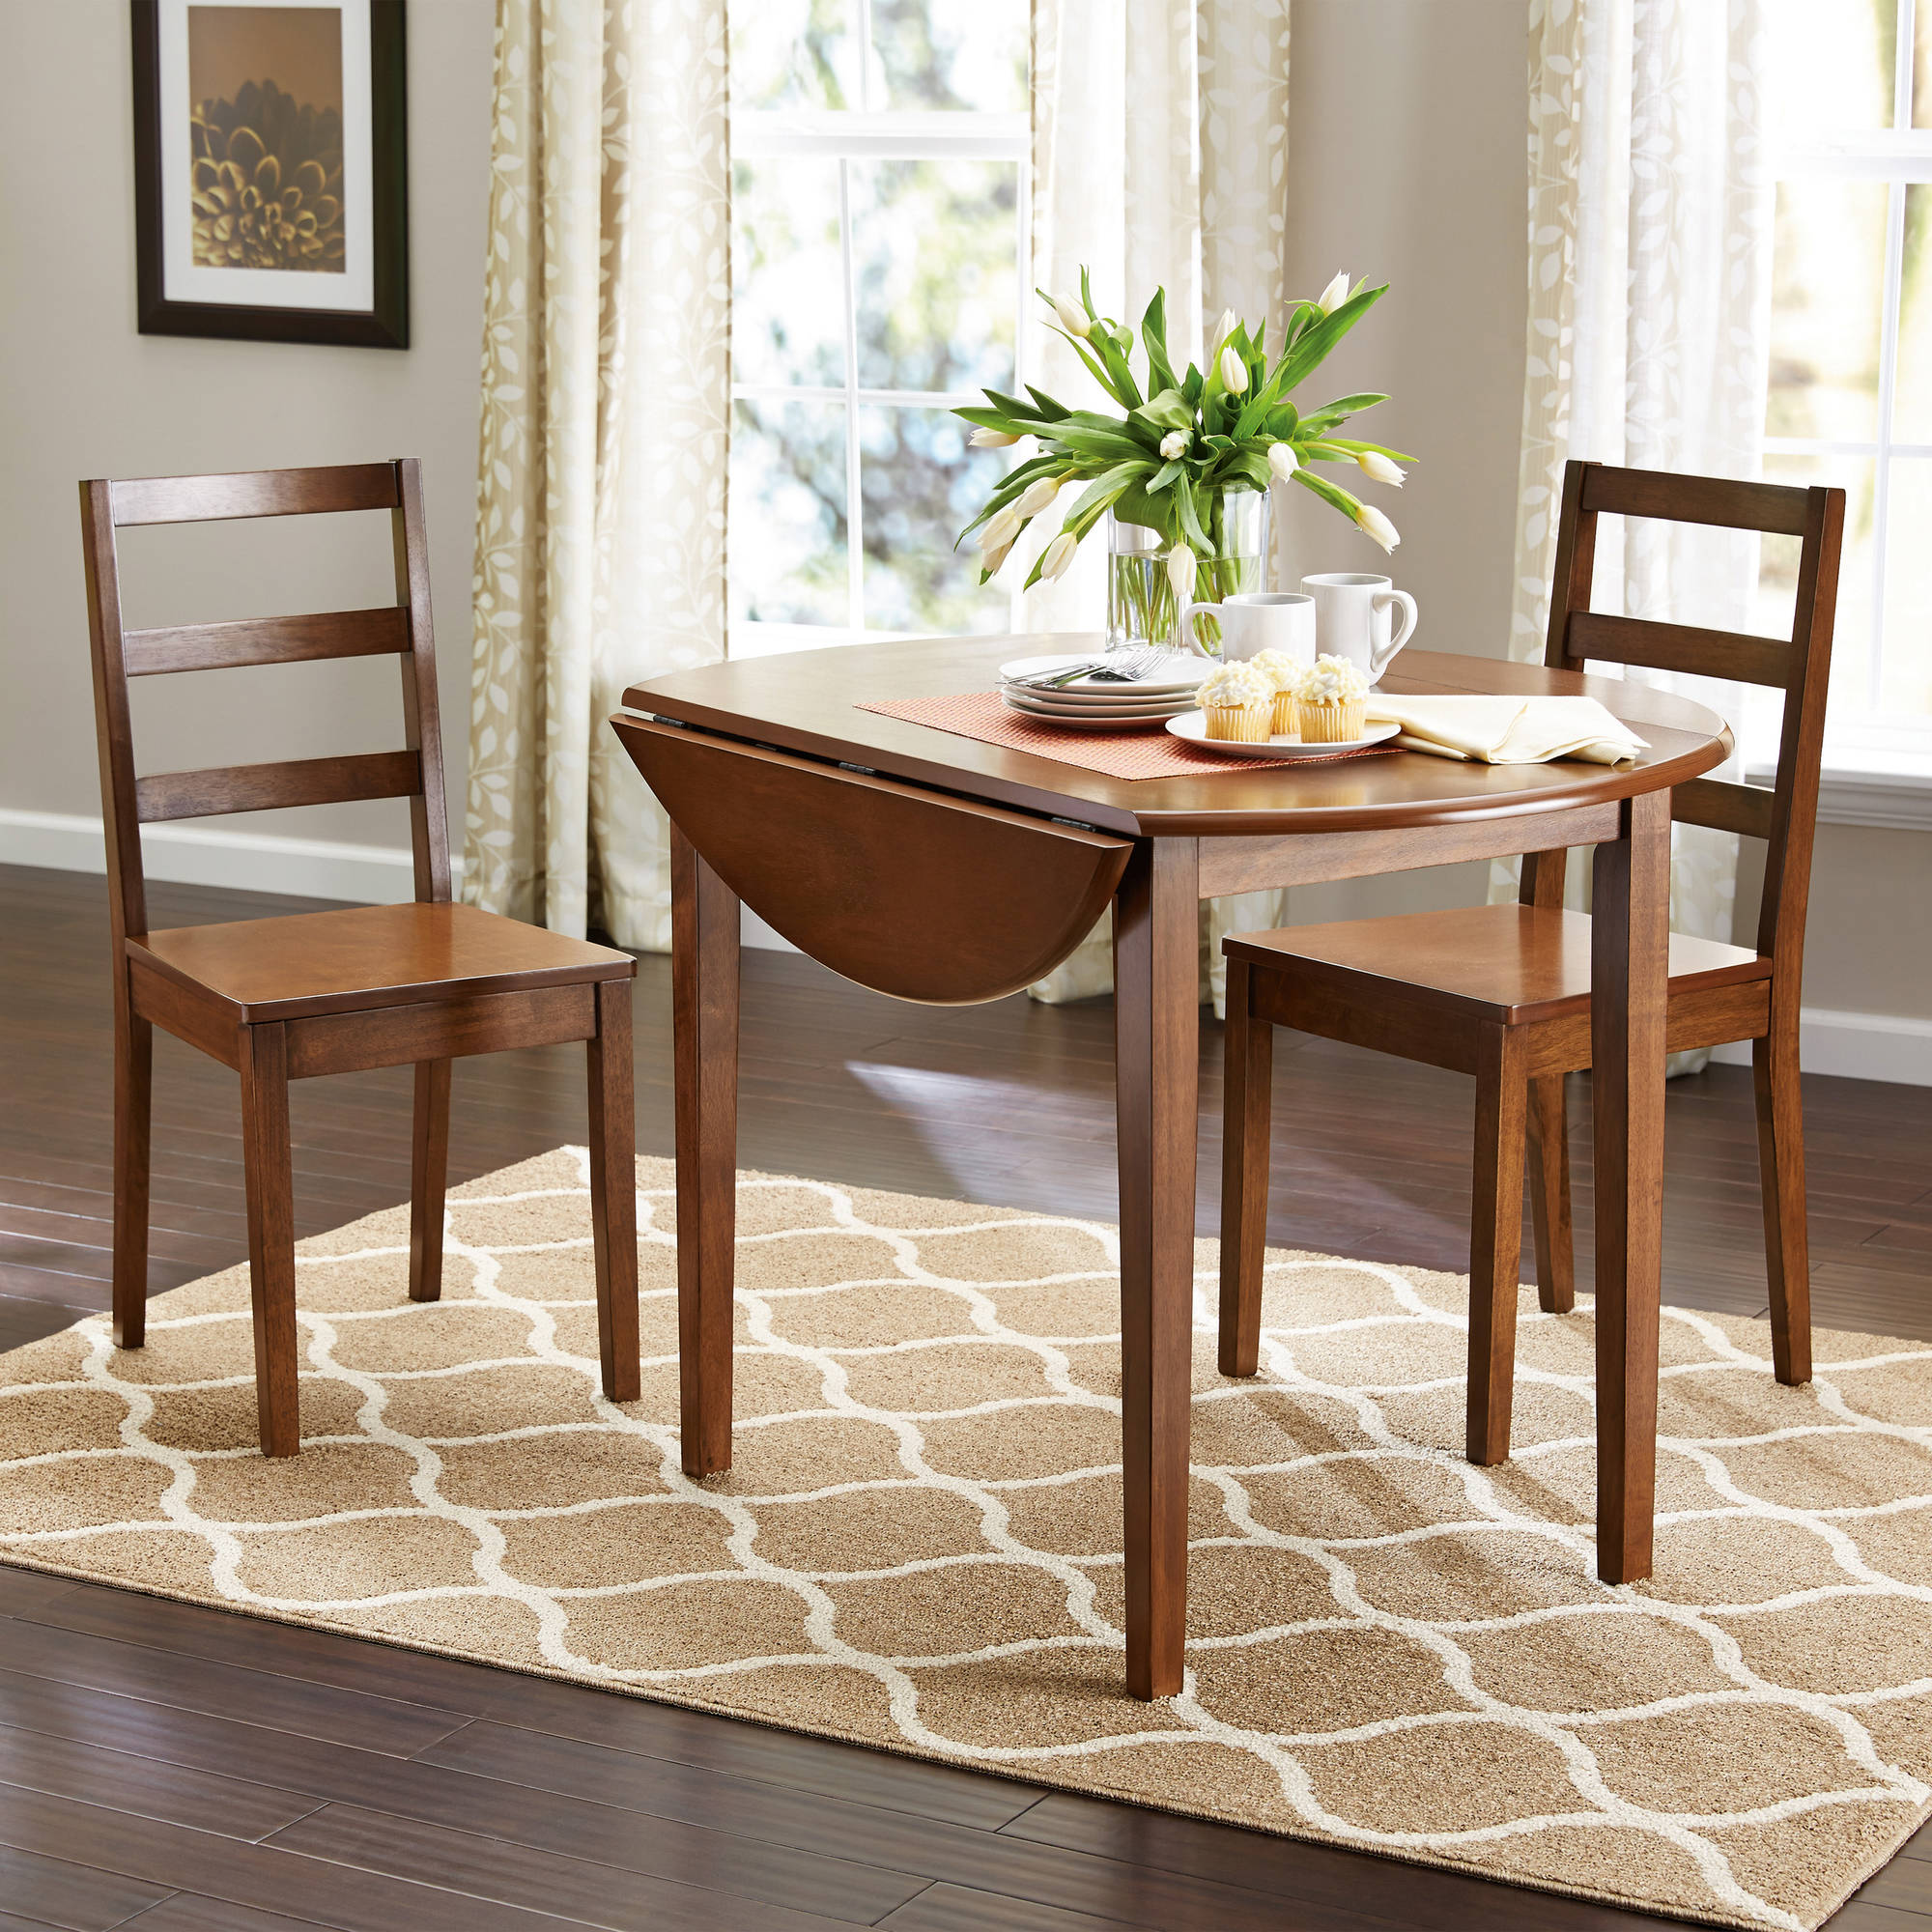 Beau Mainstays 3 Piece Drop Leaf Dining Set, Medium Oak Finish